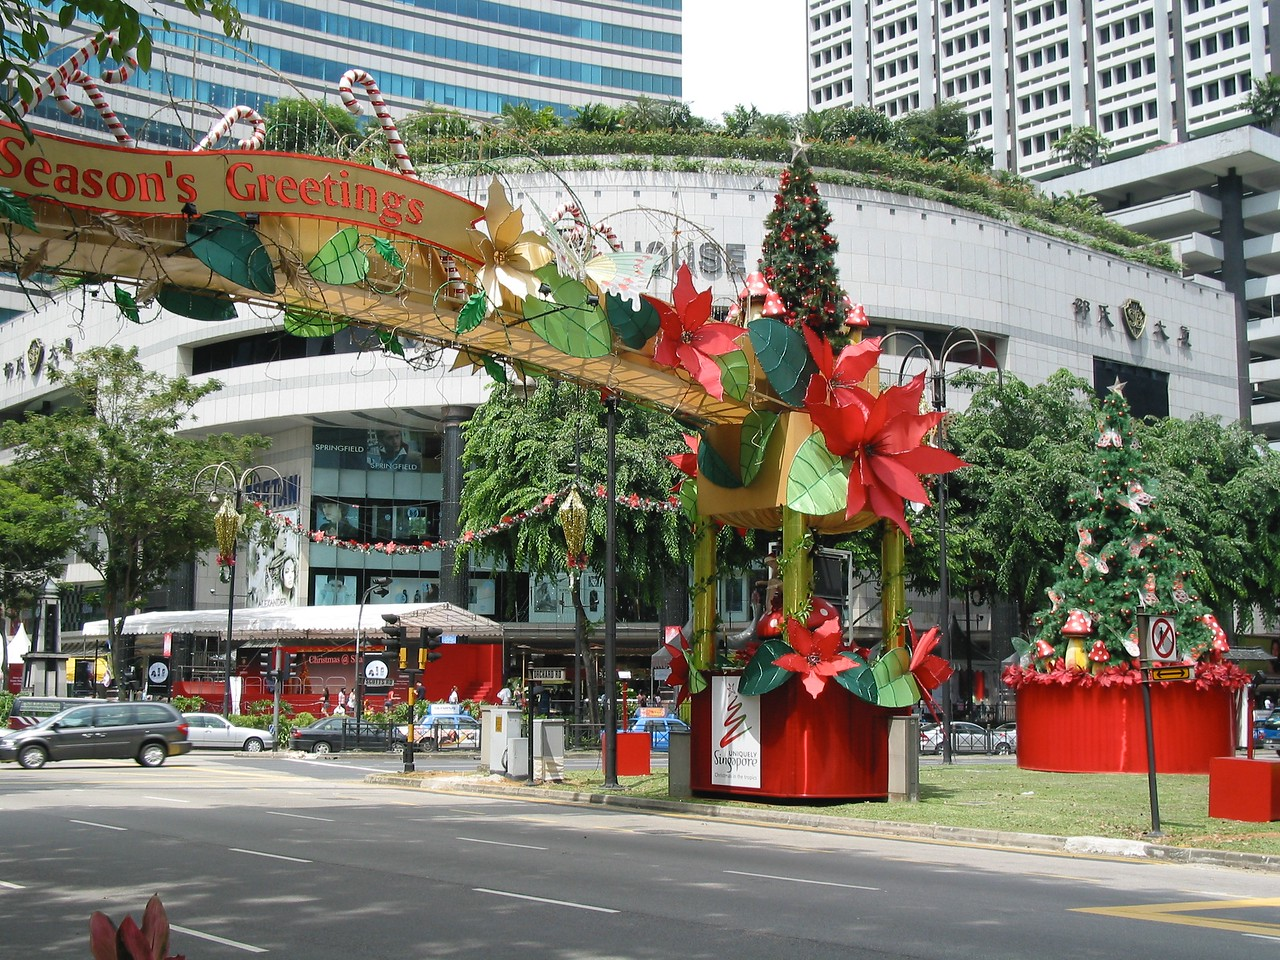 Orchard Road is consistently ranked the most-visited attraction in Singapore, It attracts more than seven million visitors each year, while thousands of local residents visit the area for leisure and work each day.